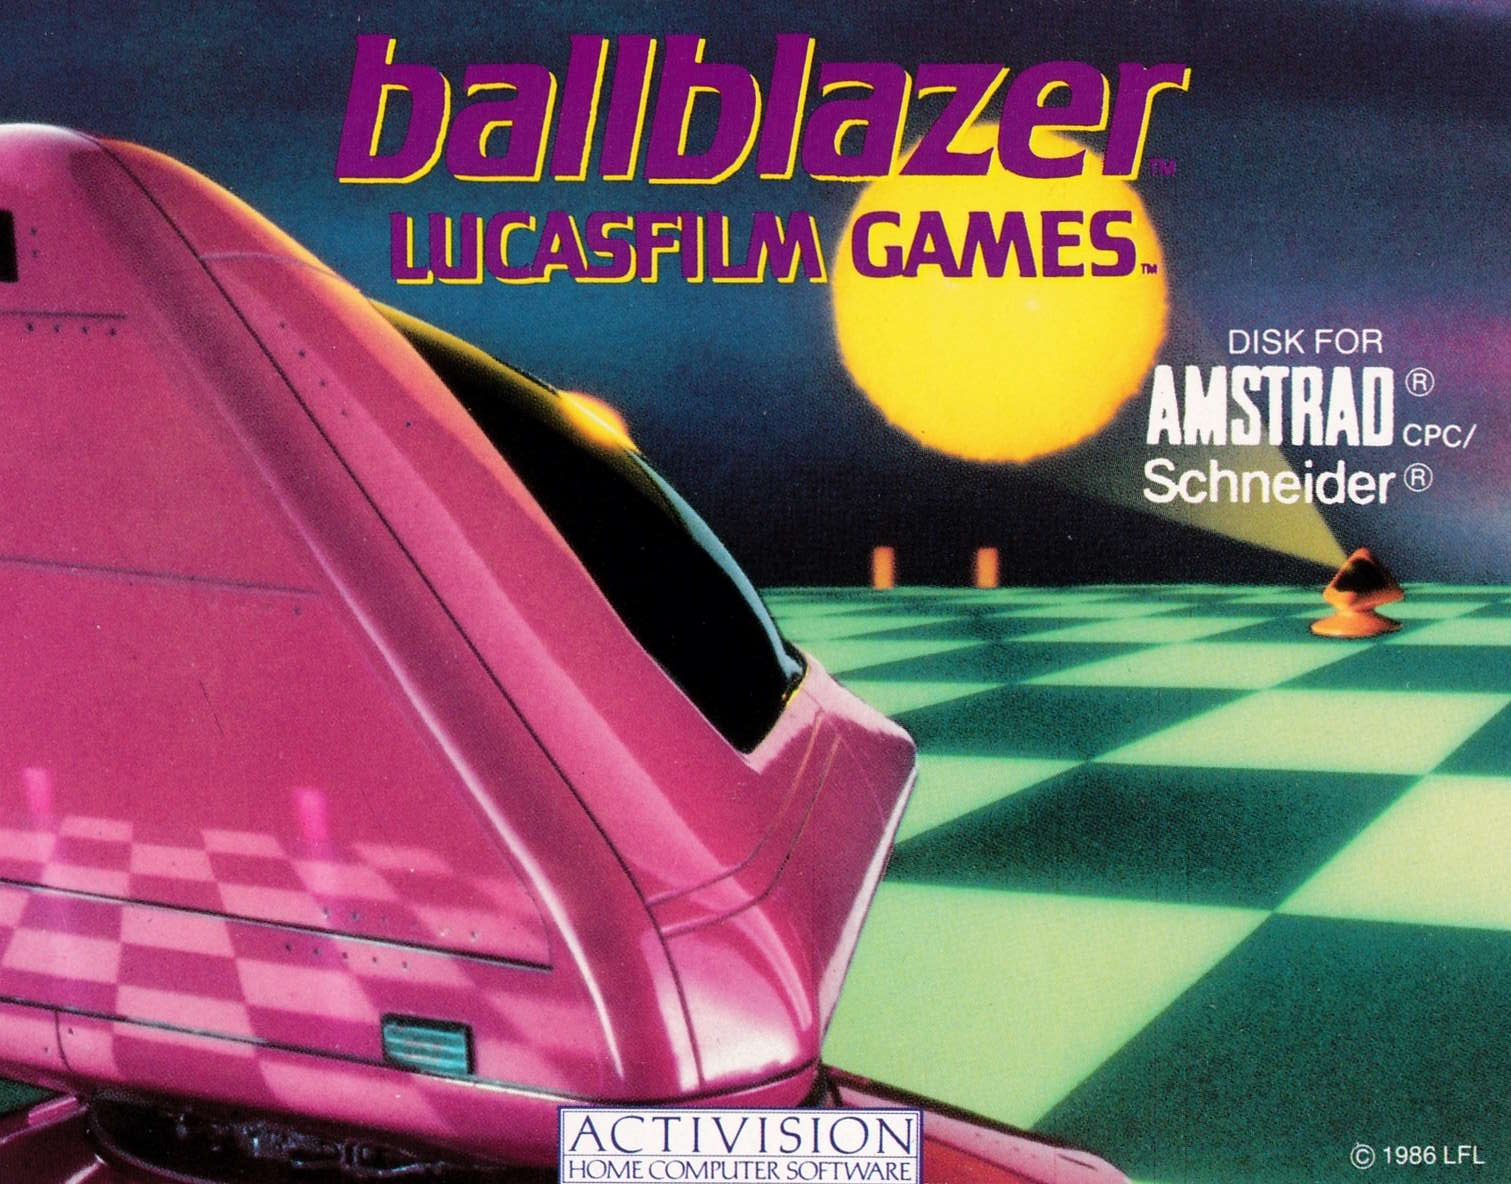 cover of the Amstrad CPC game Ballblazer  by GameBase CPC